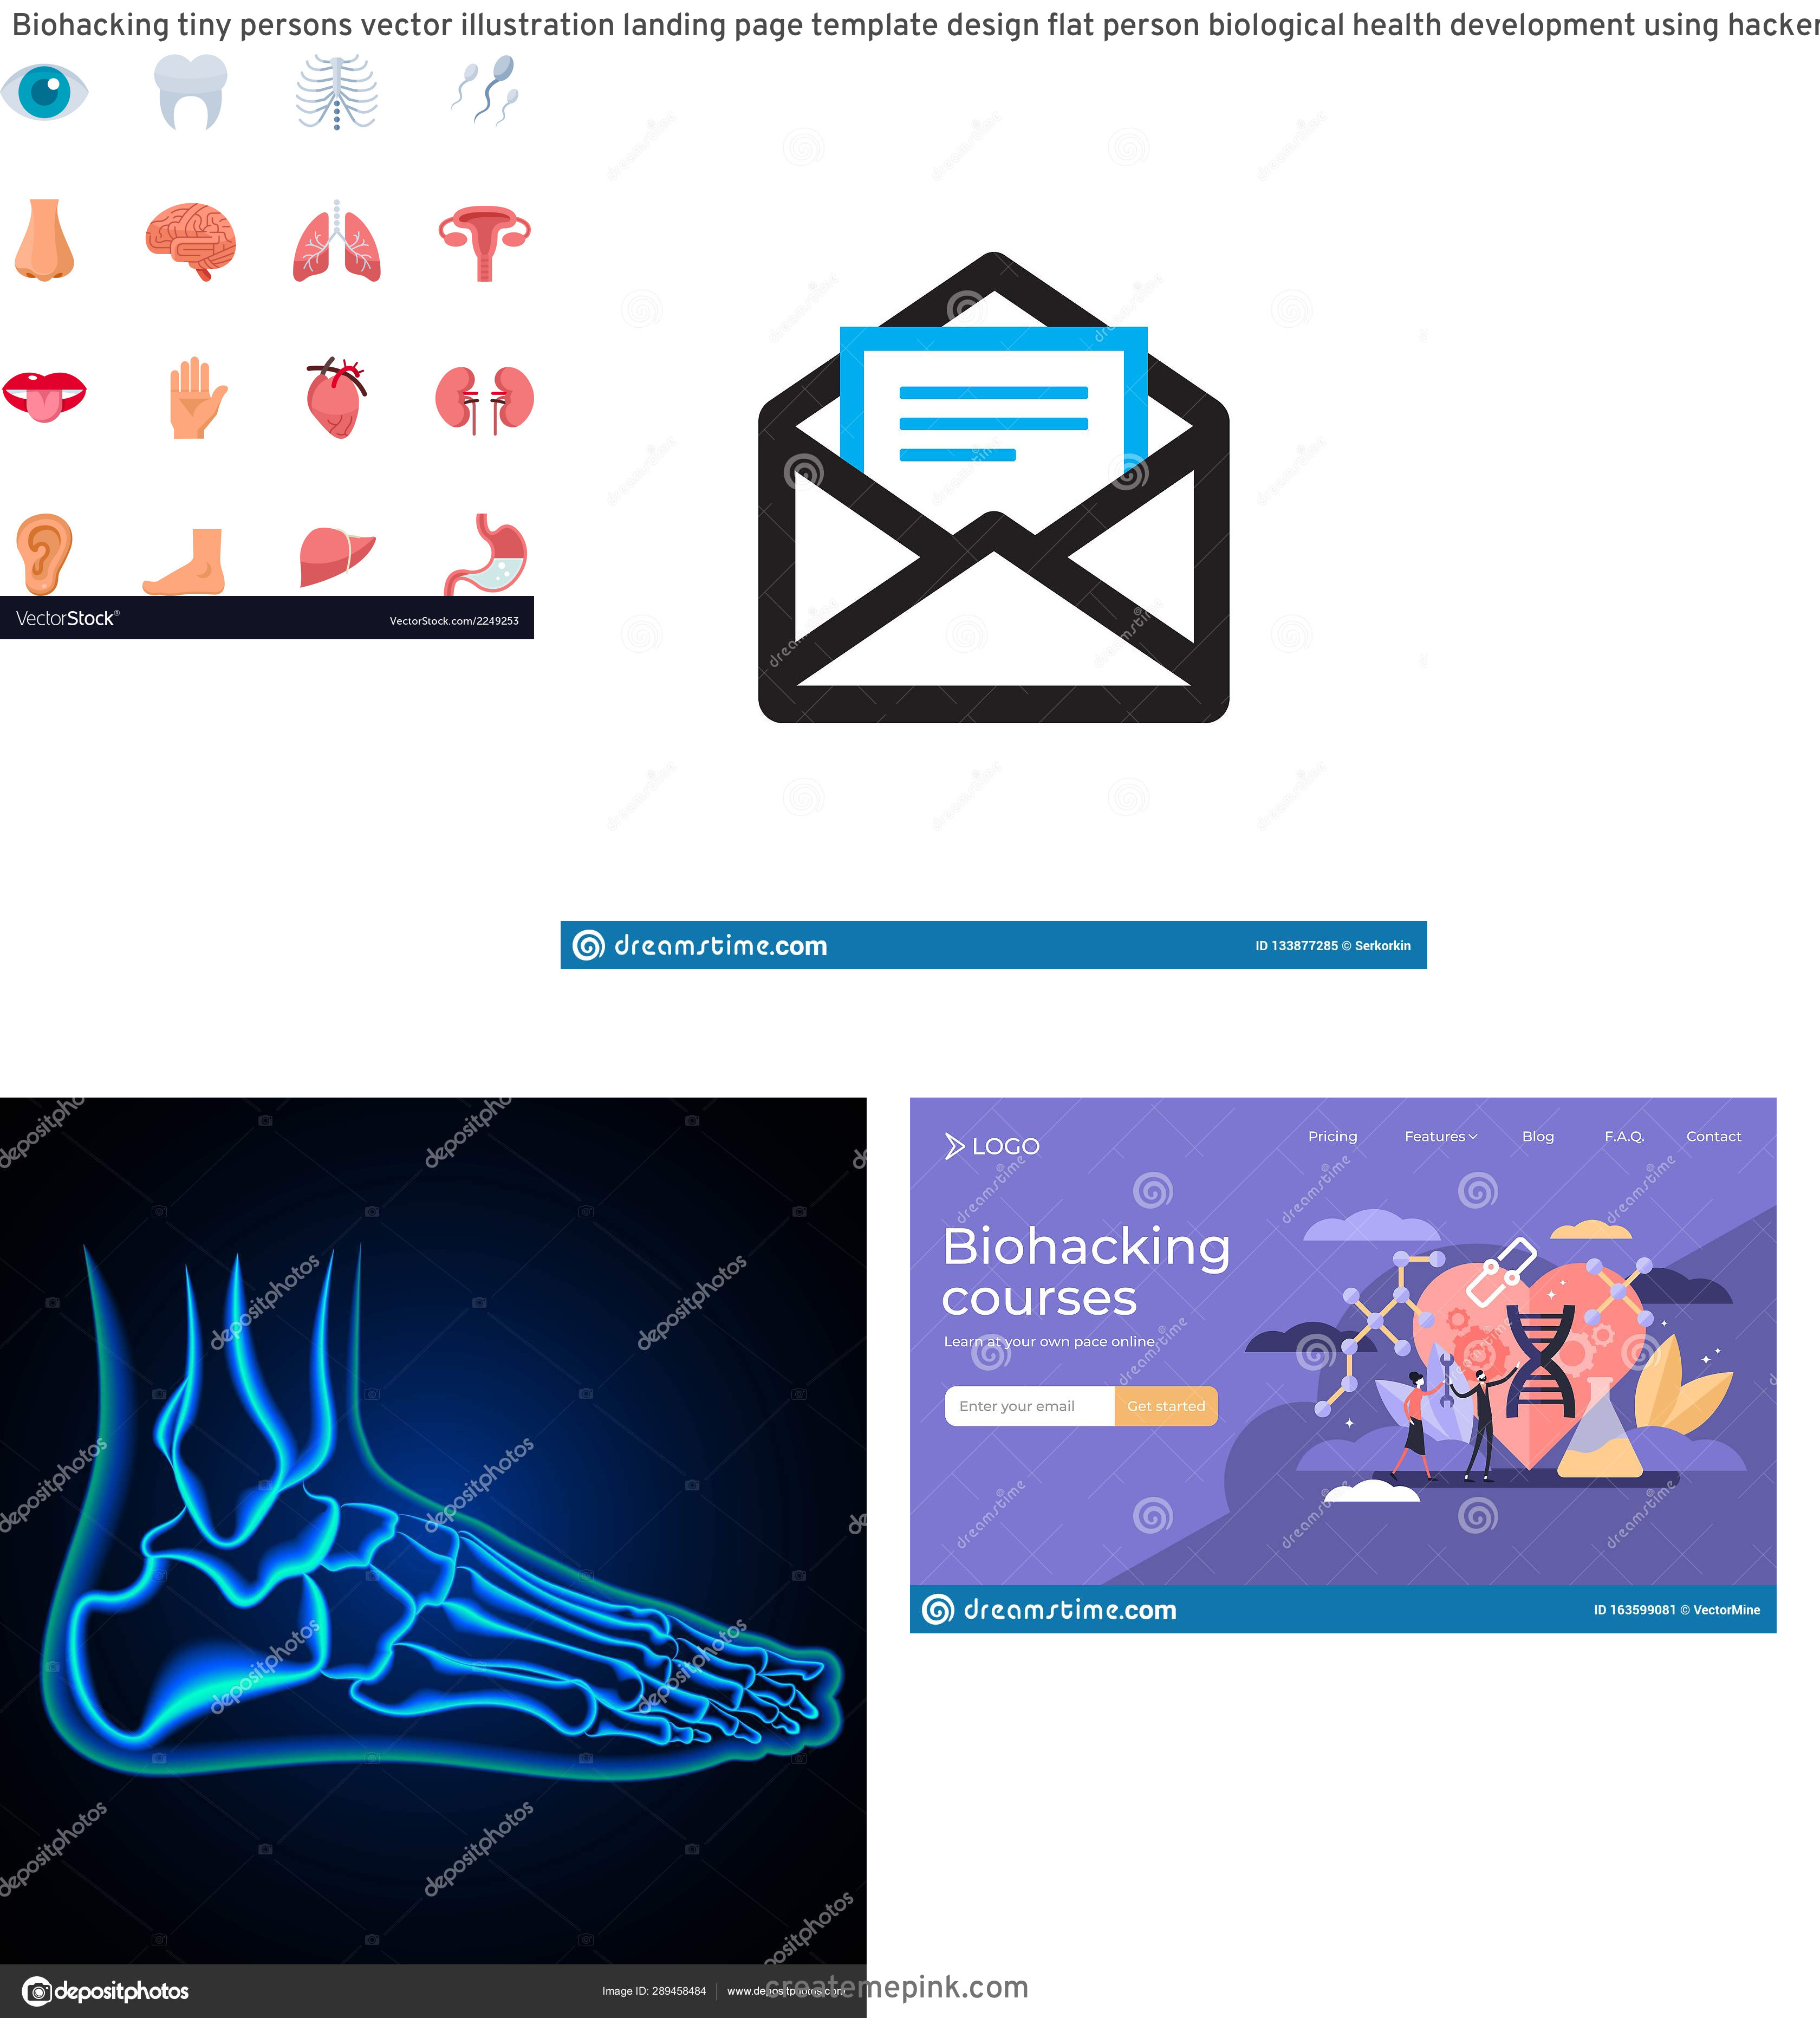 Vector Email Anatomy: Biohacking Tiny Persons Vector Illustration Landing Page Template Design Flat Person Biological Health Development Using Hacker Image